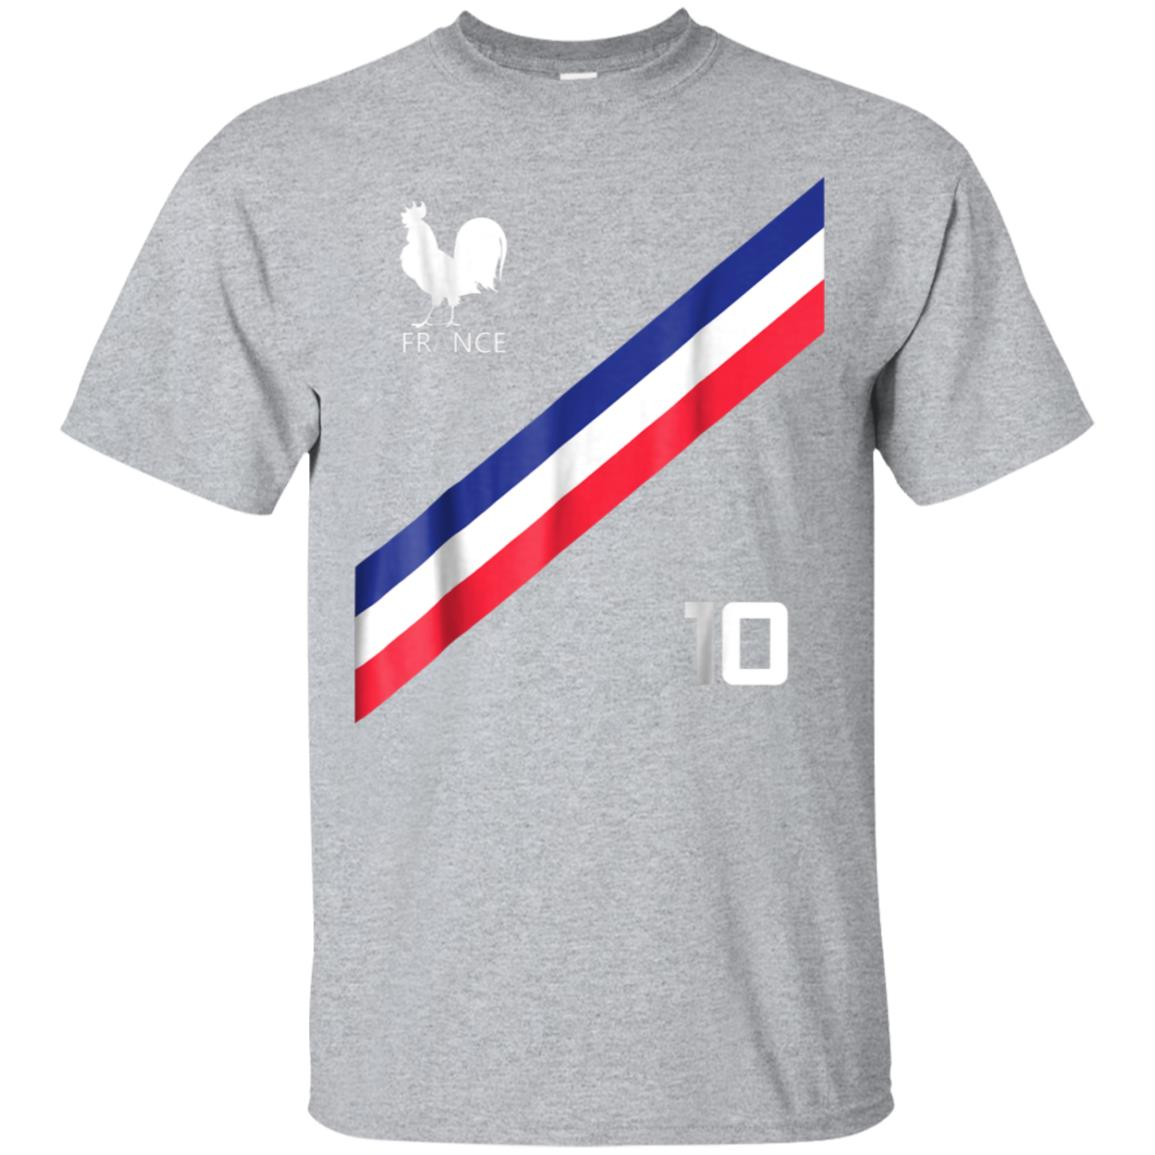 FRANCE JERSEY SHIRT SOCCER FRENCH FOOTBALL MEN WOMEN KIDS 99promocode